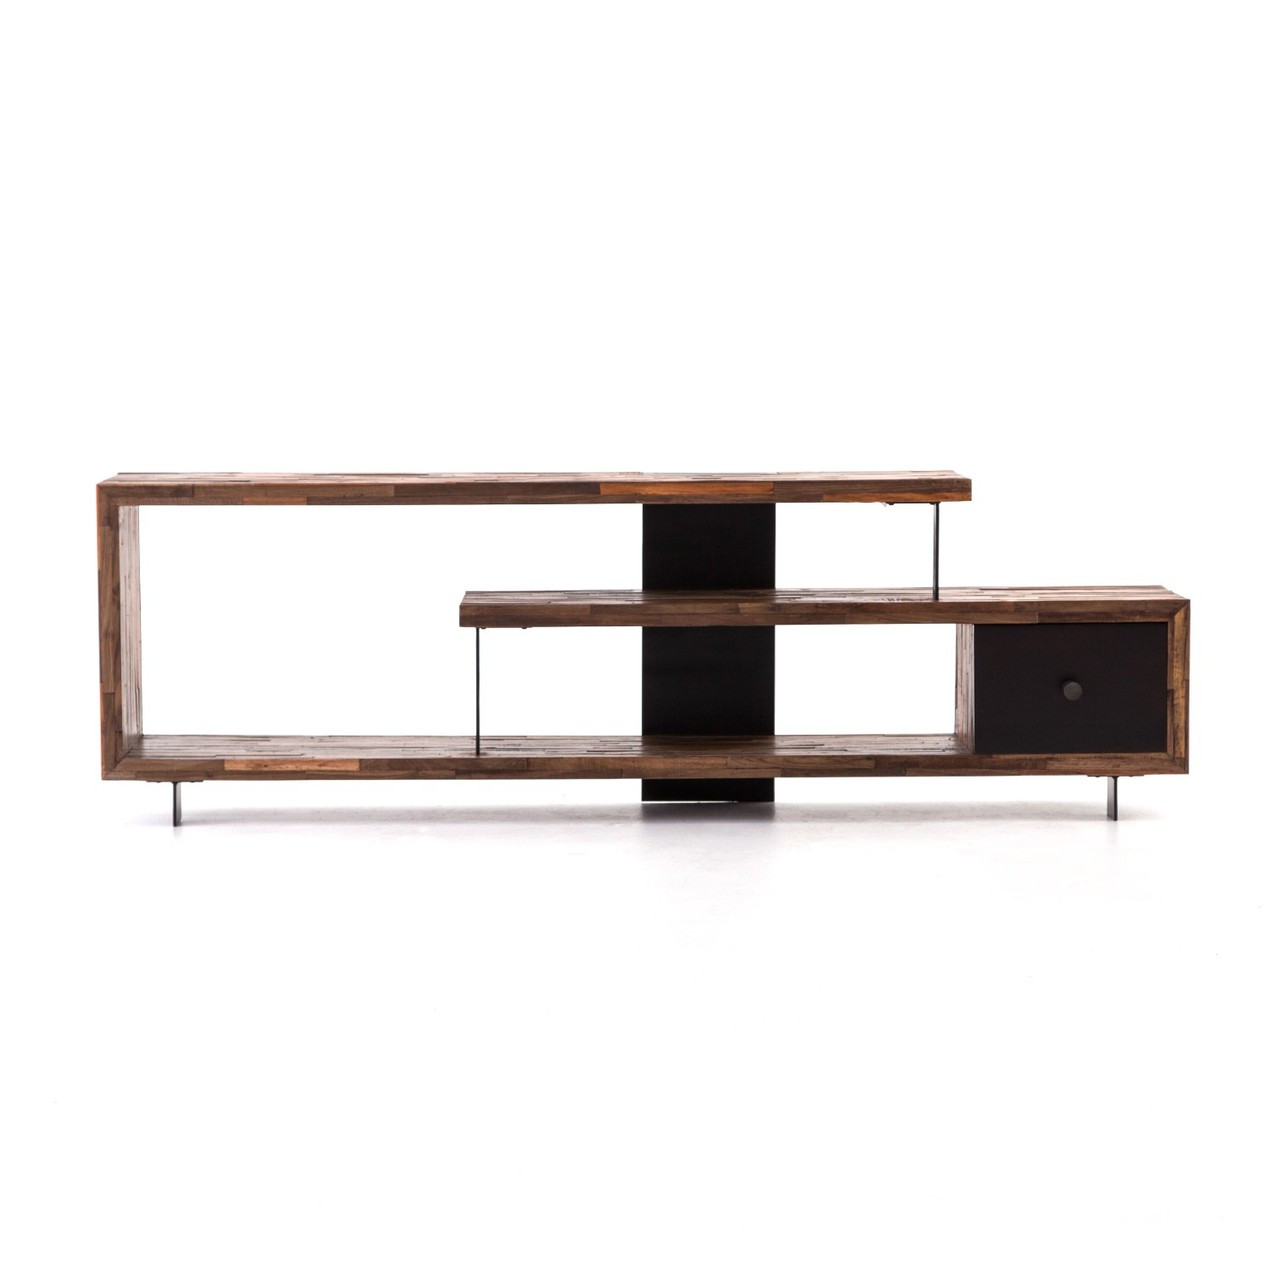 Peachy Jonah Staggered Reclaimed Wood Tv Console Table 76 Download Free Architecture Designs Grimeyleaguecom